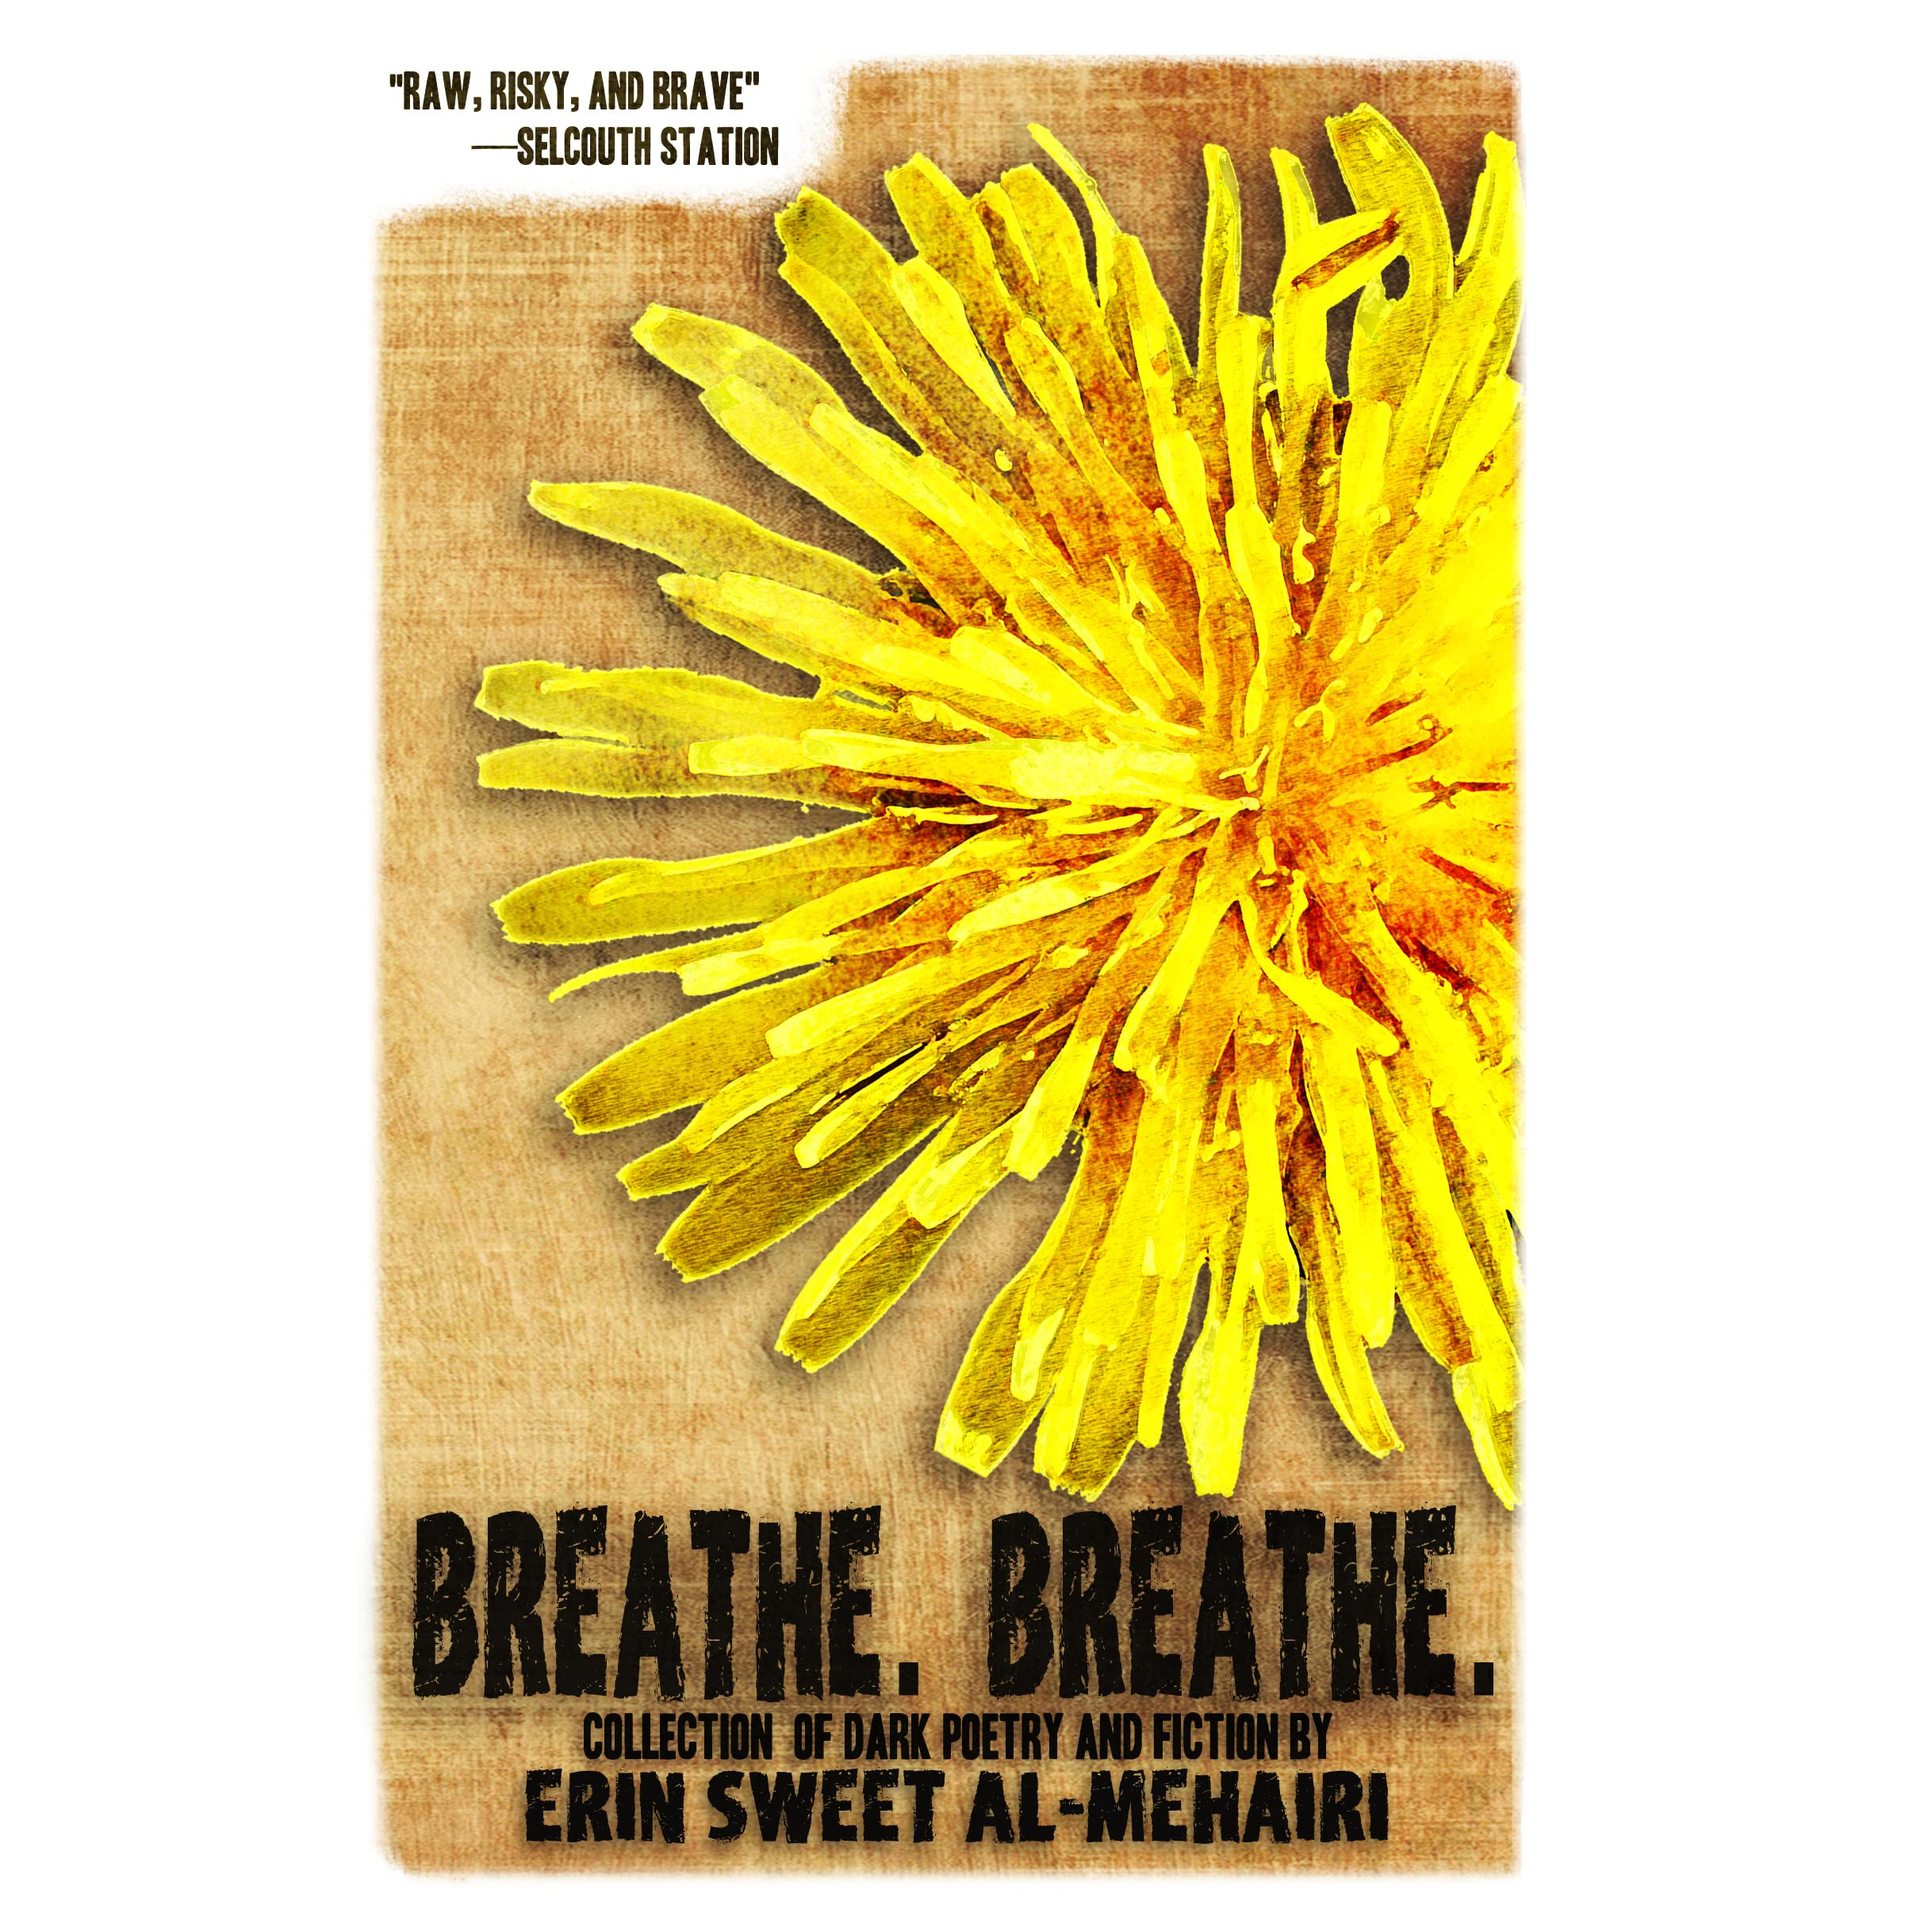 Image result for erin sweet al mehairi breathe breathe